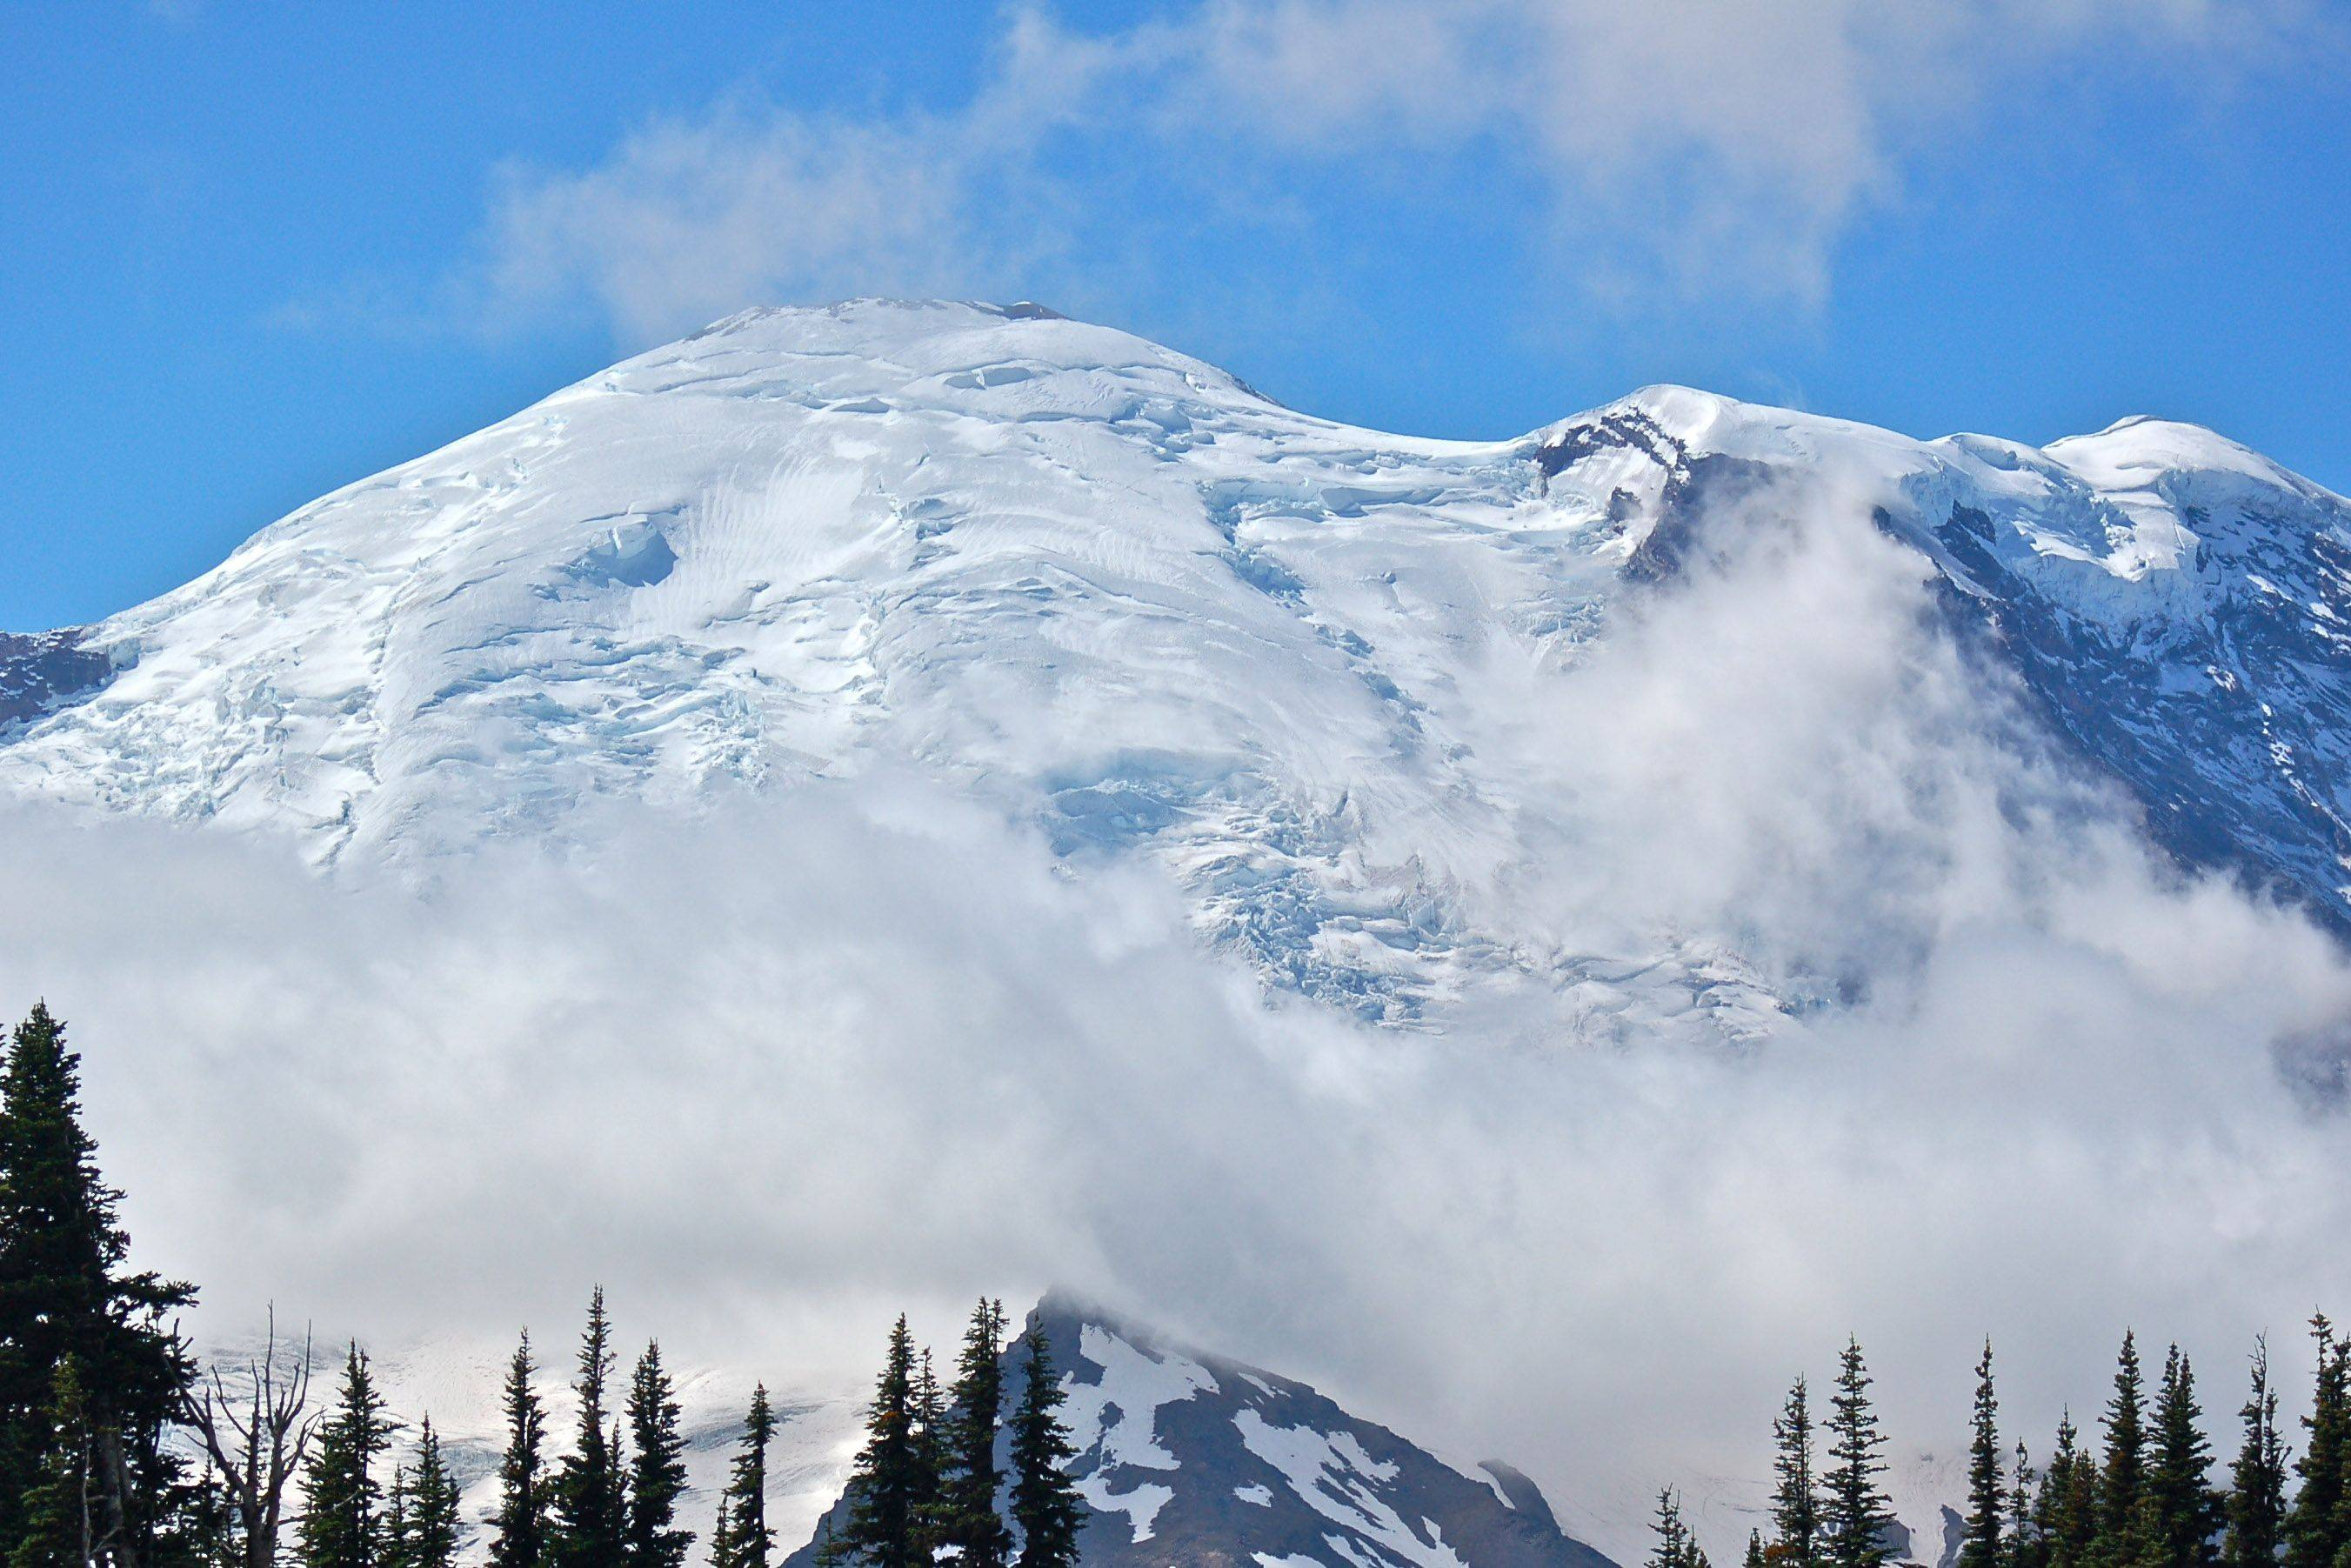 This picture of Mt. Rainier, in Washington, was taken on September 4th from the Sunrise visitor area. We were told a clear day on the mountain at this time of year is rare.